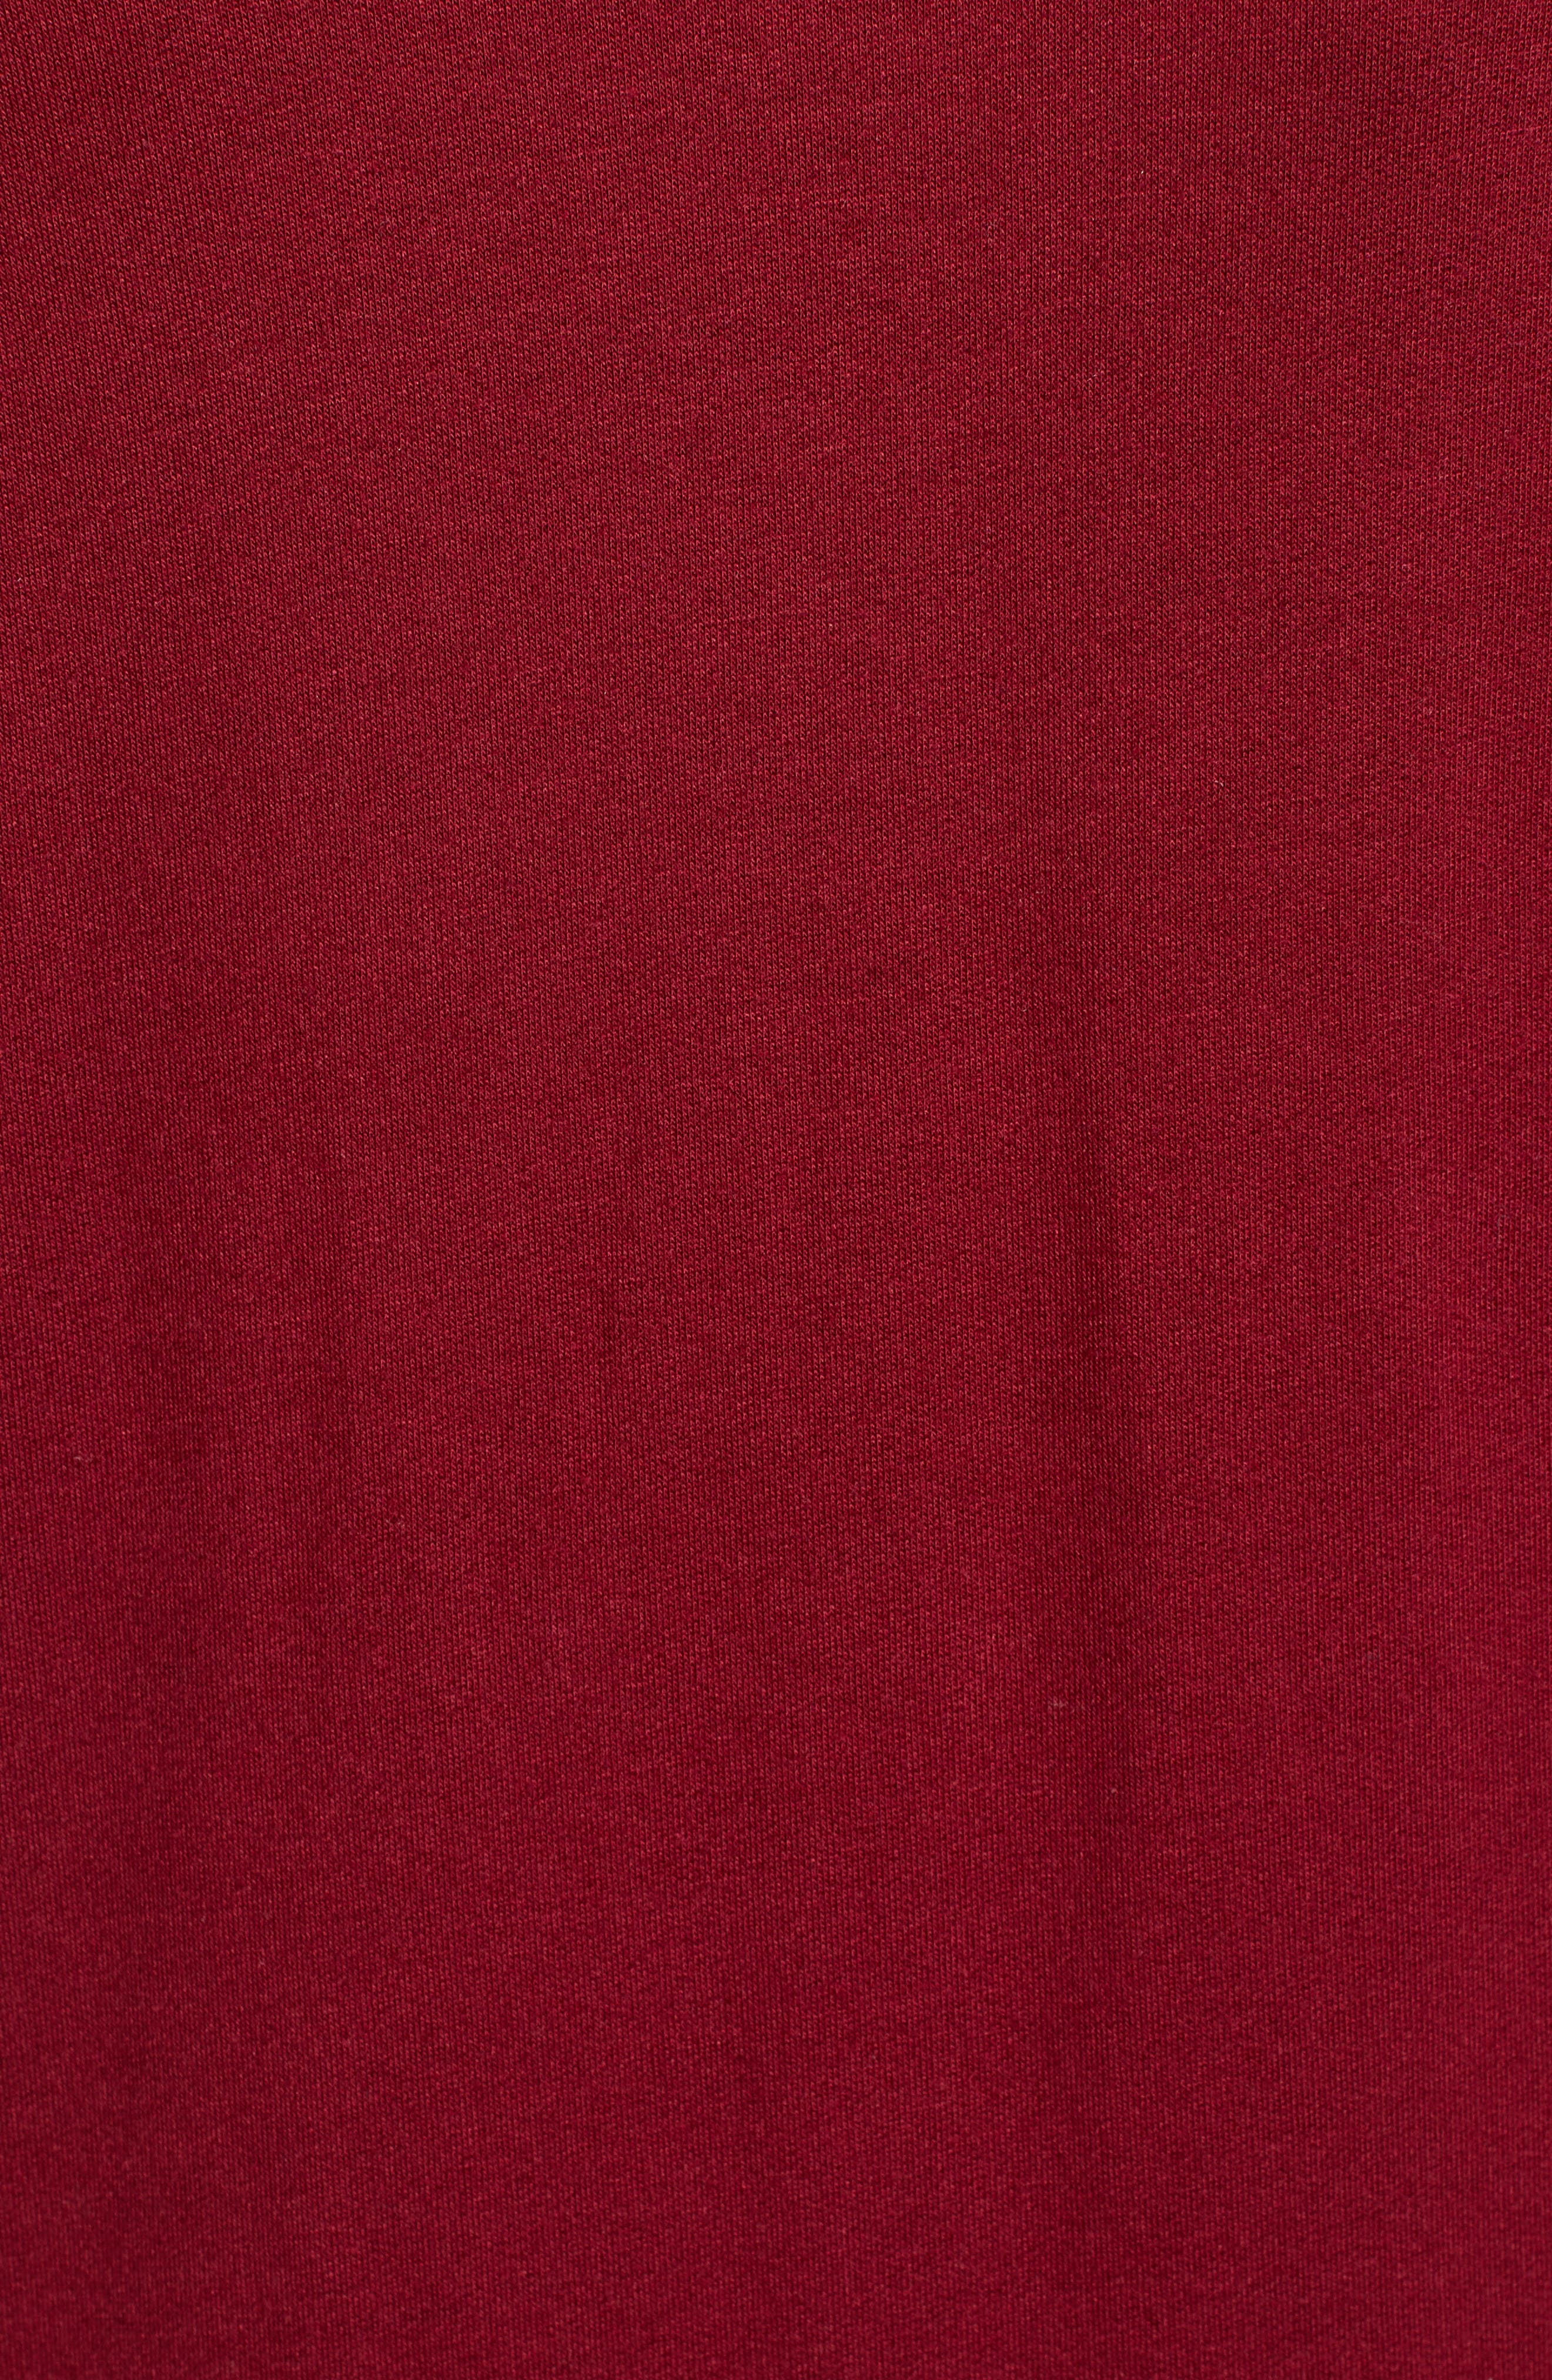 High/Low Tunic,                             Alternate thumbnail 6, color,                             MAROON